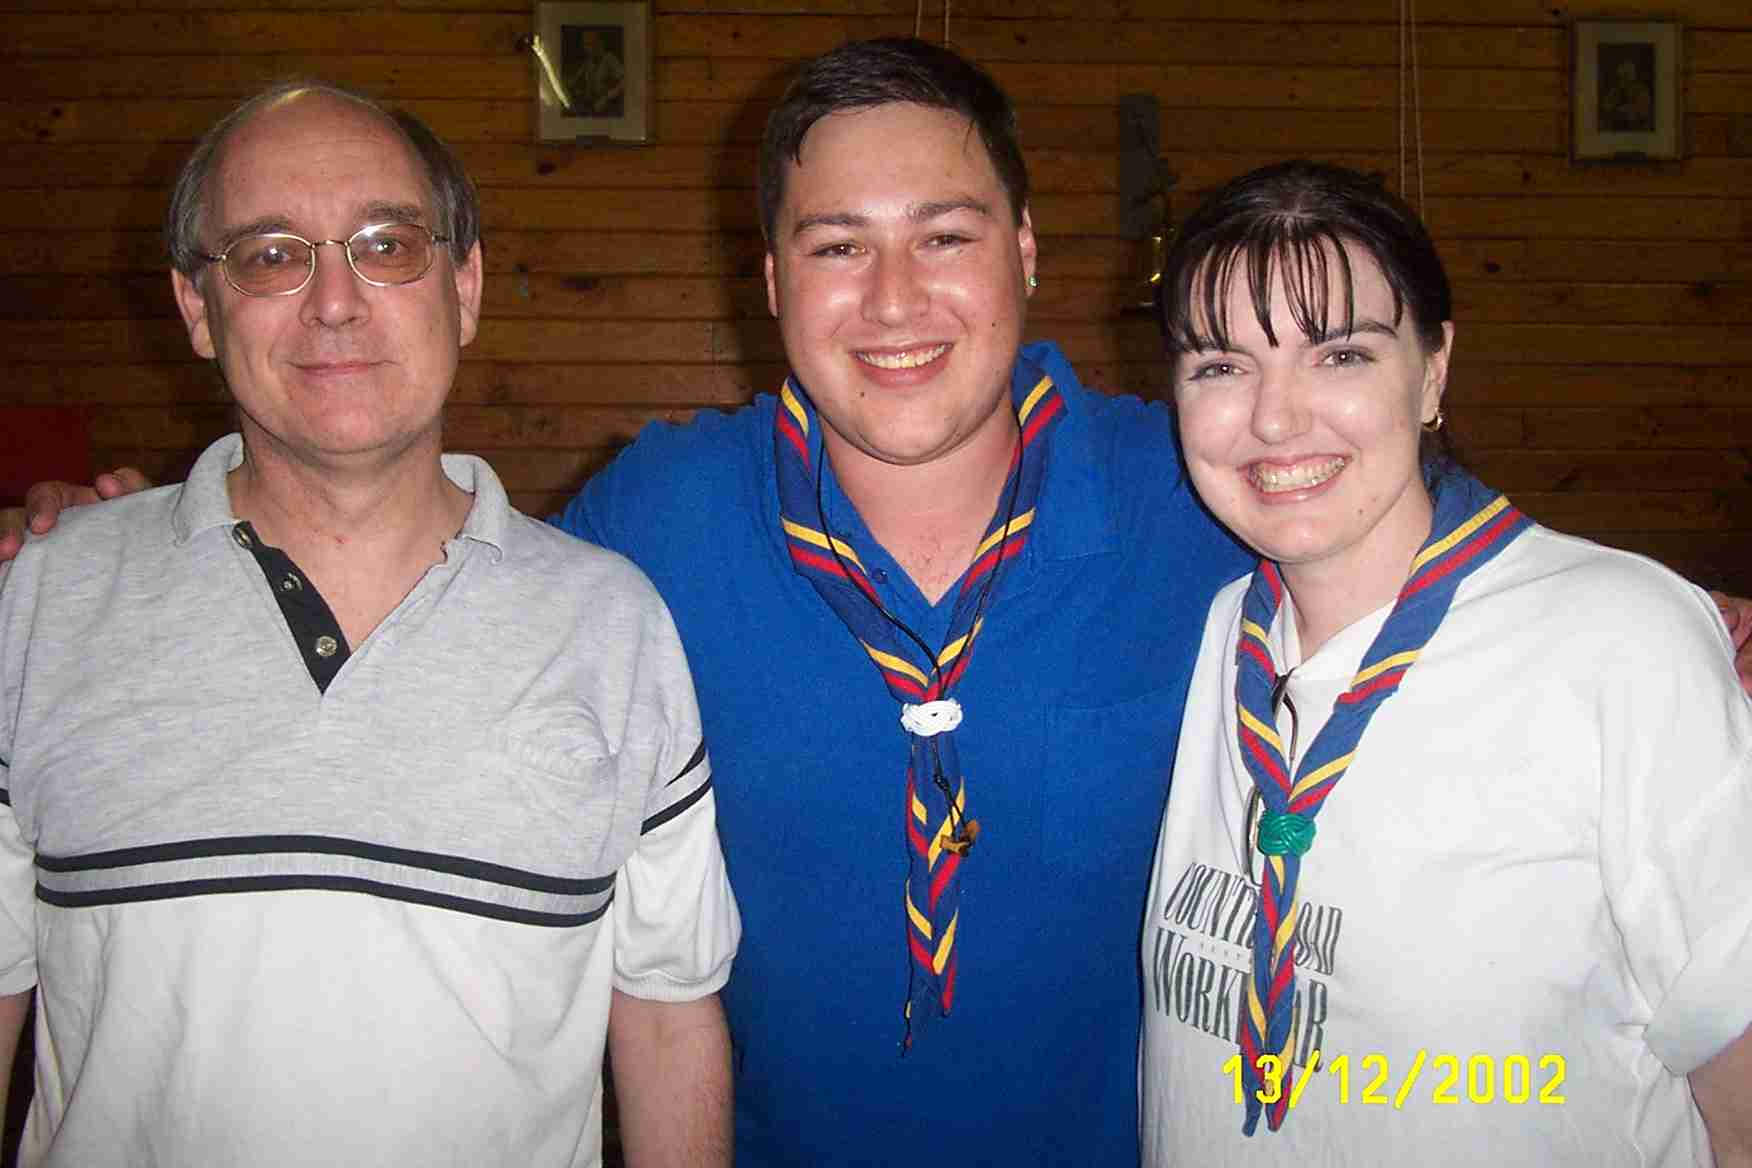 tamboscoutleaders2002.jpg